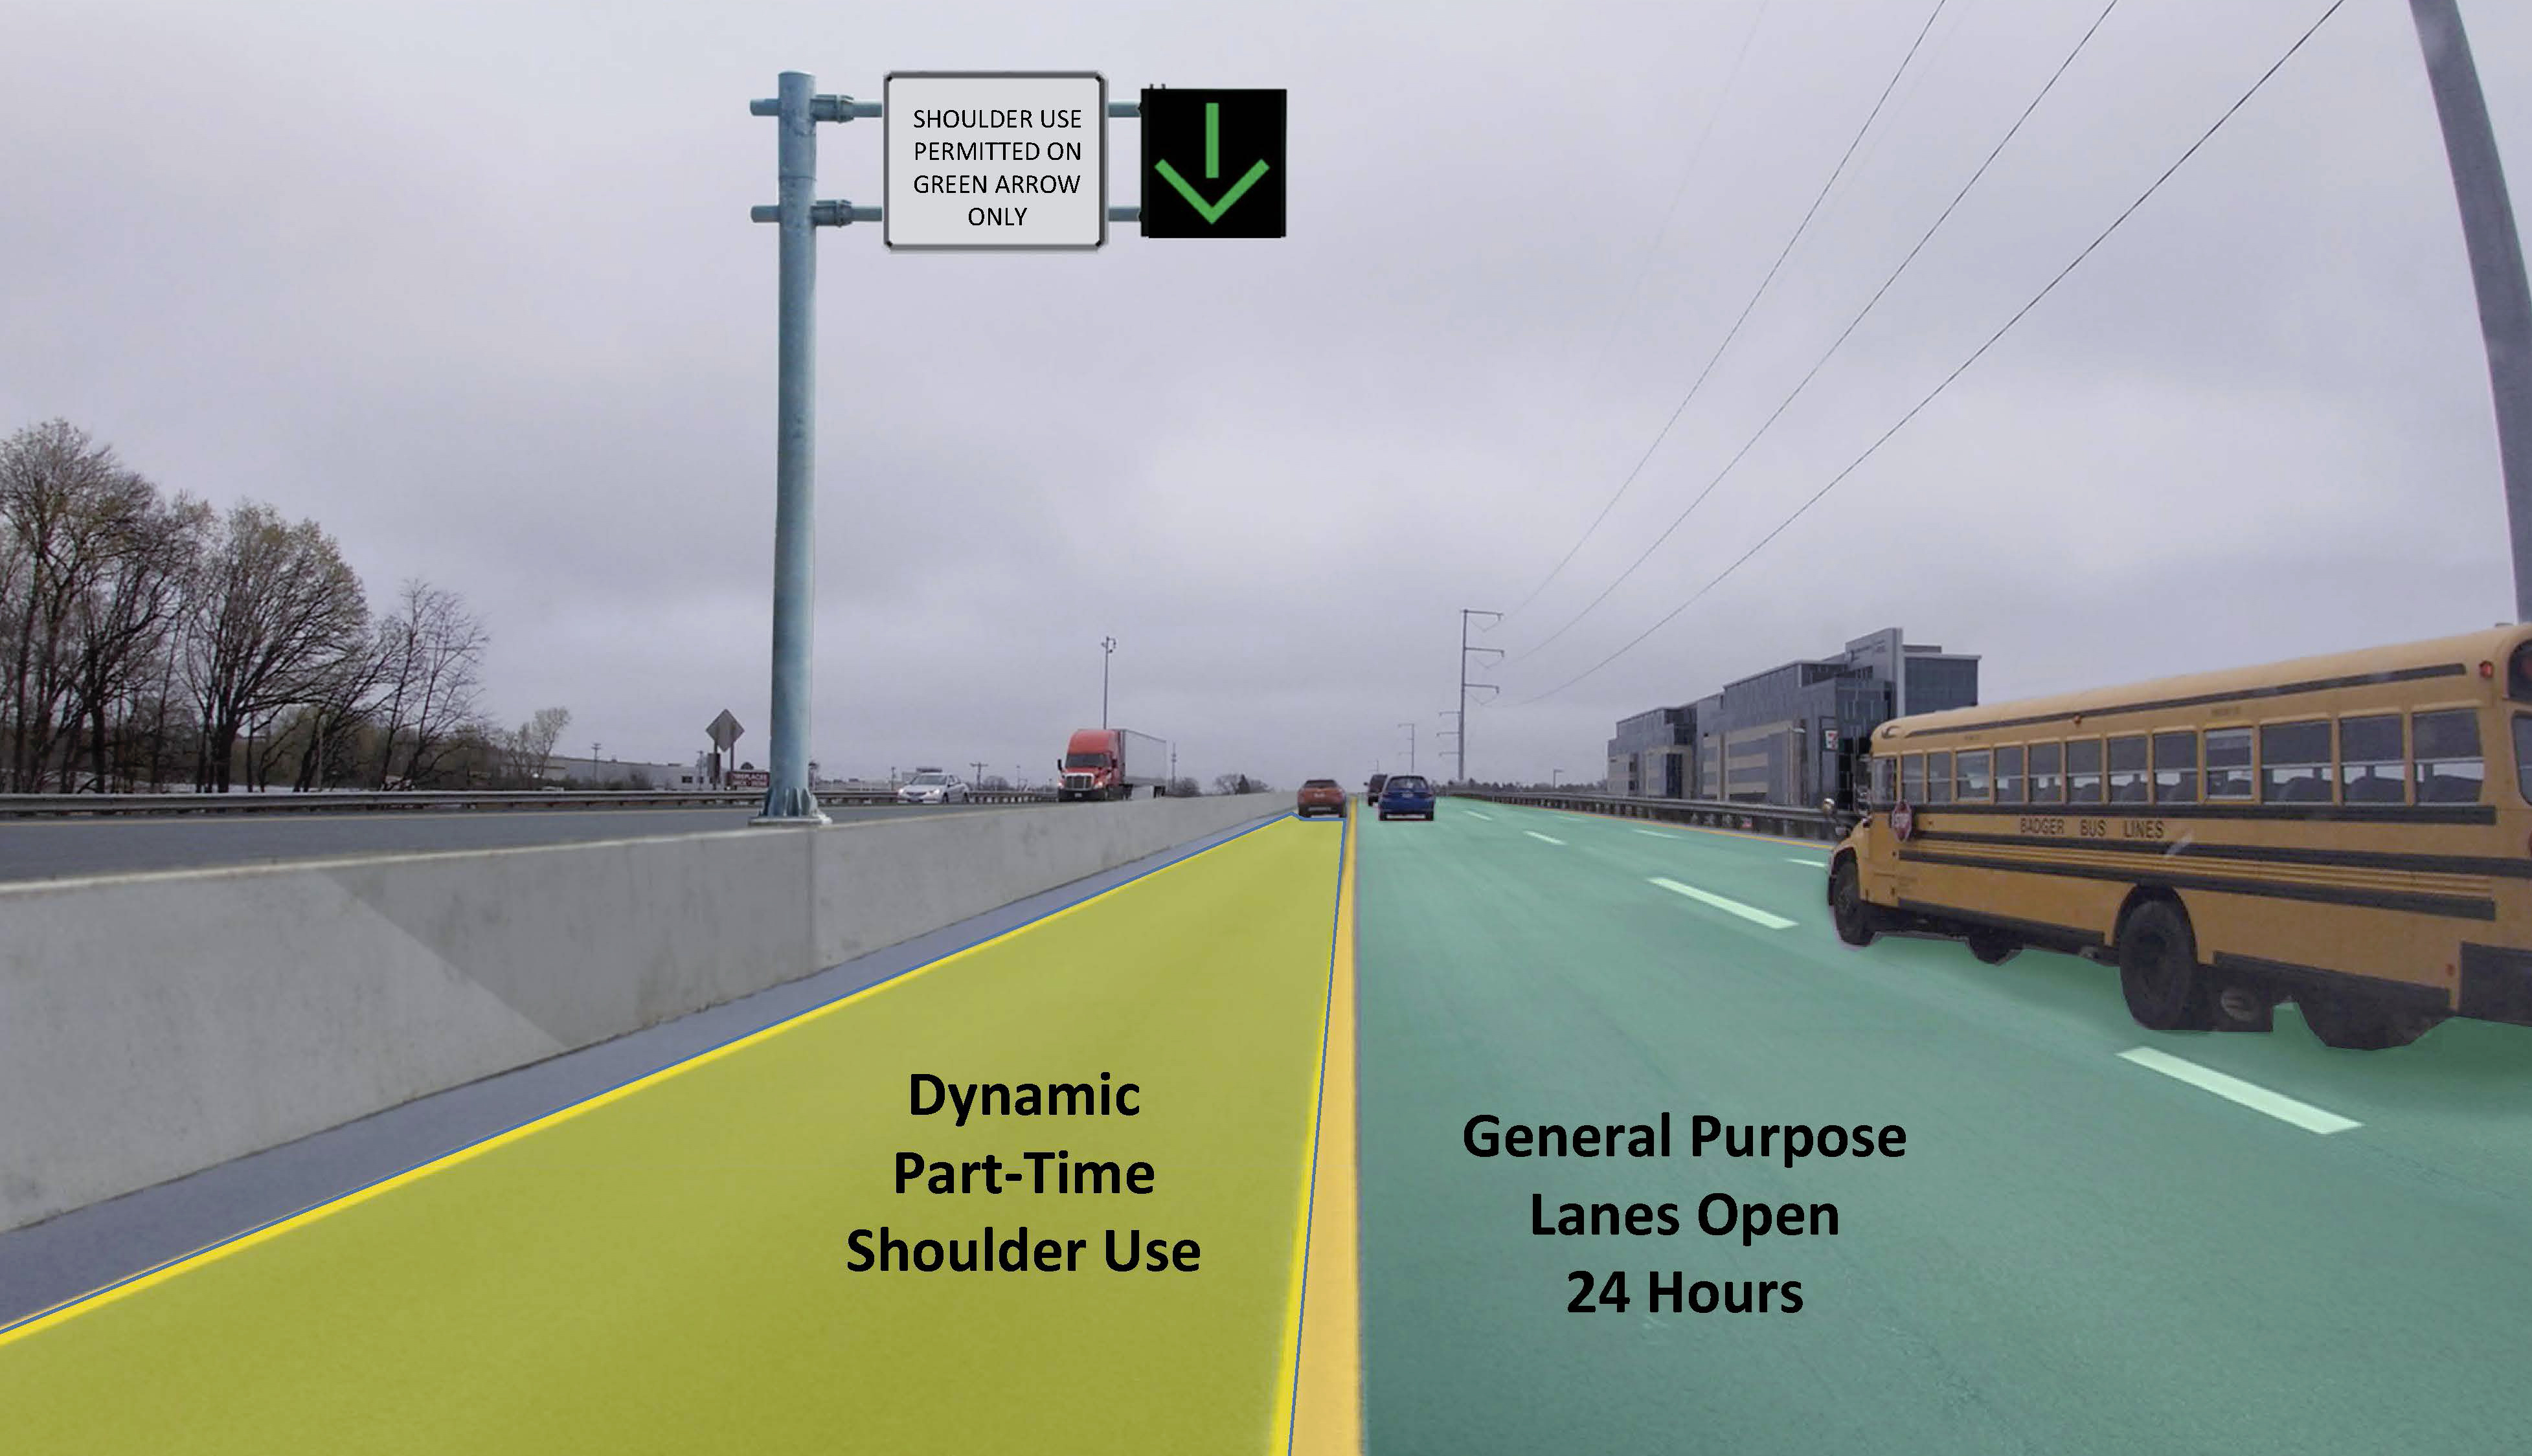 Image showing what the road would look like with Shoulder use allowed